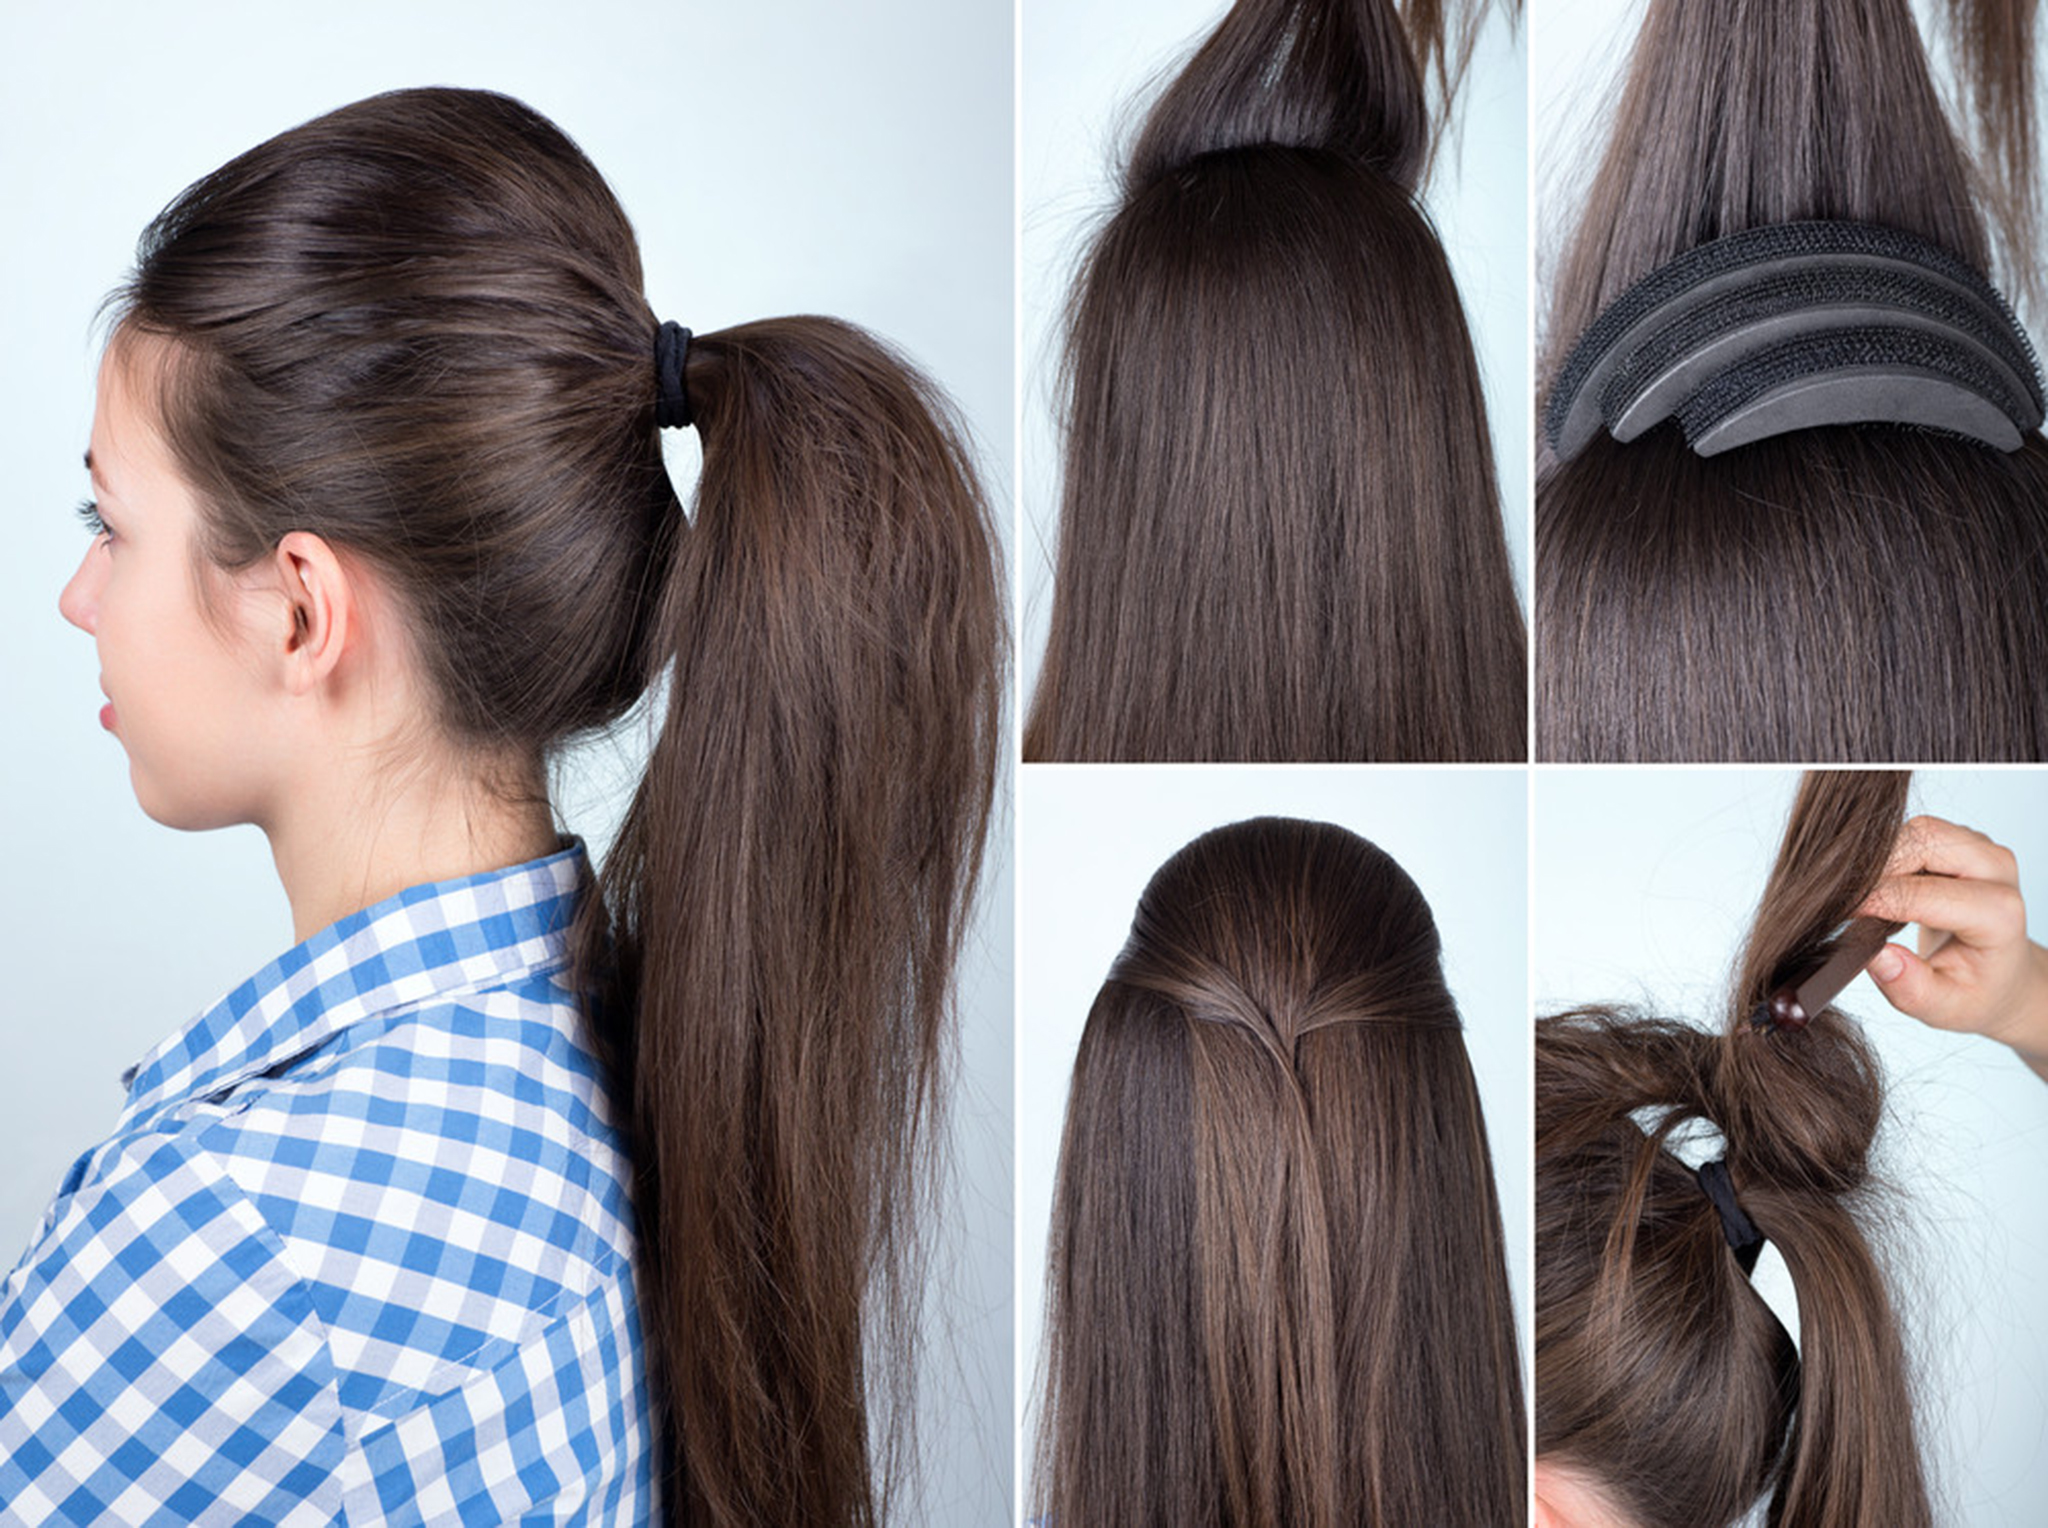 Outstanding Awesome Ponytail Hairstyles One For Every Occasion Gymbuddy Now Natural Hairstyles Runnerswayorg